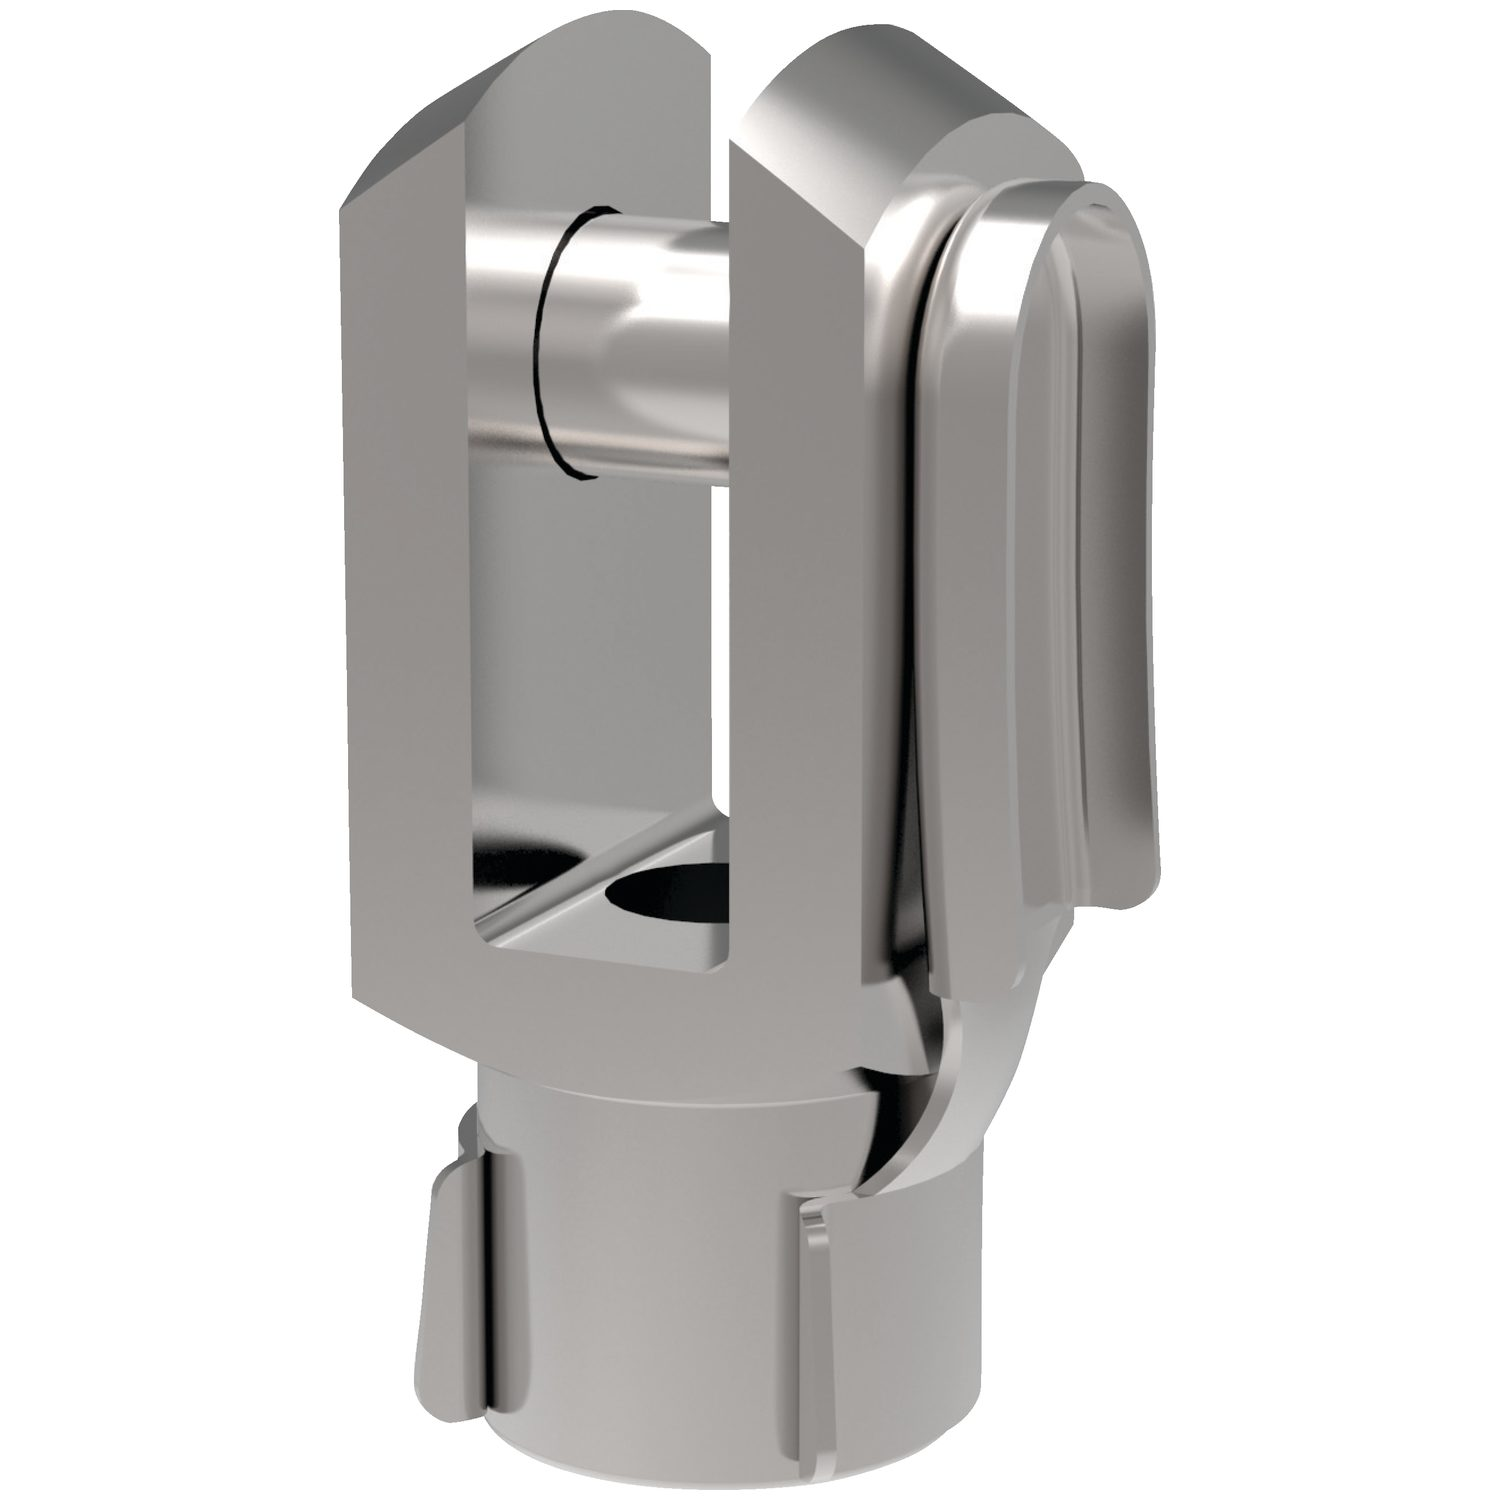 R3388 - Steel Clevis Joints with Retention Clips